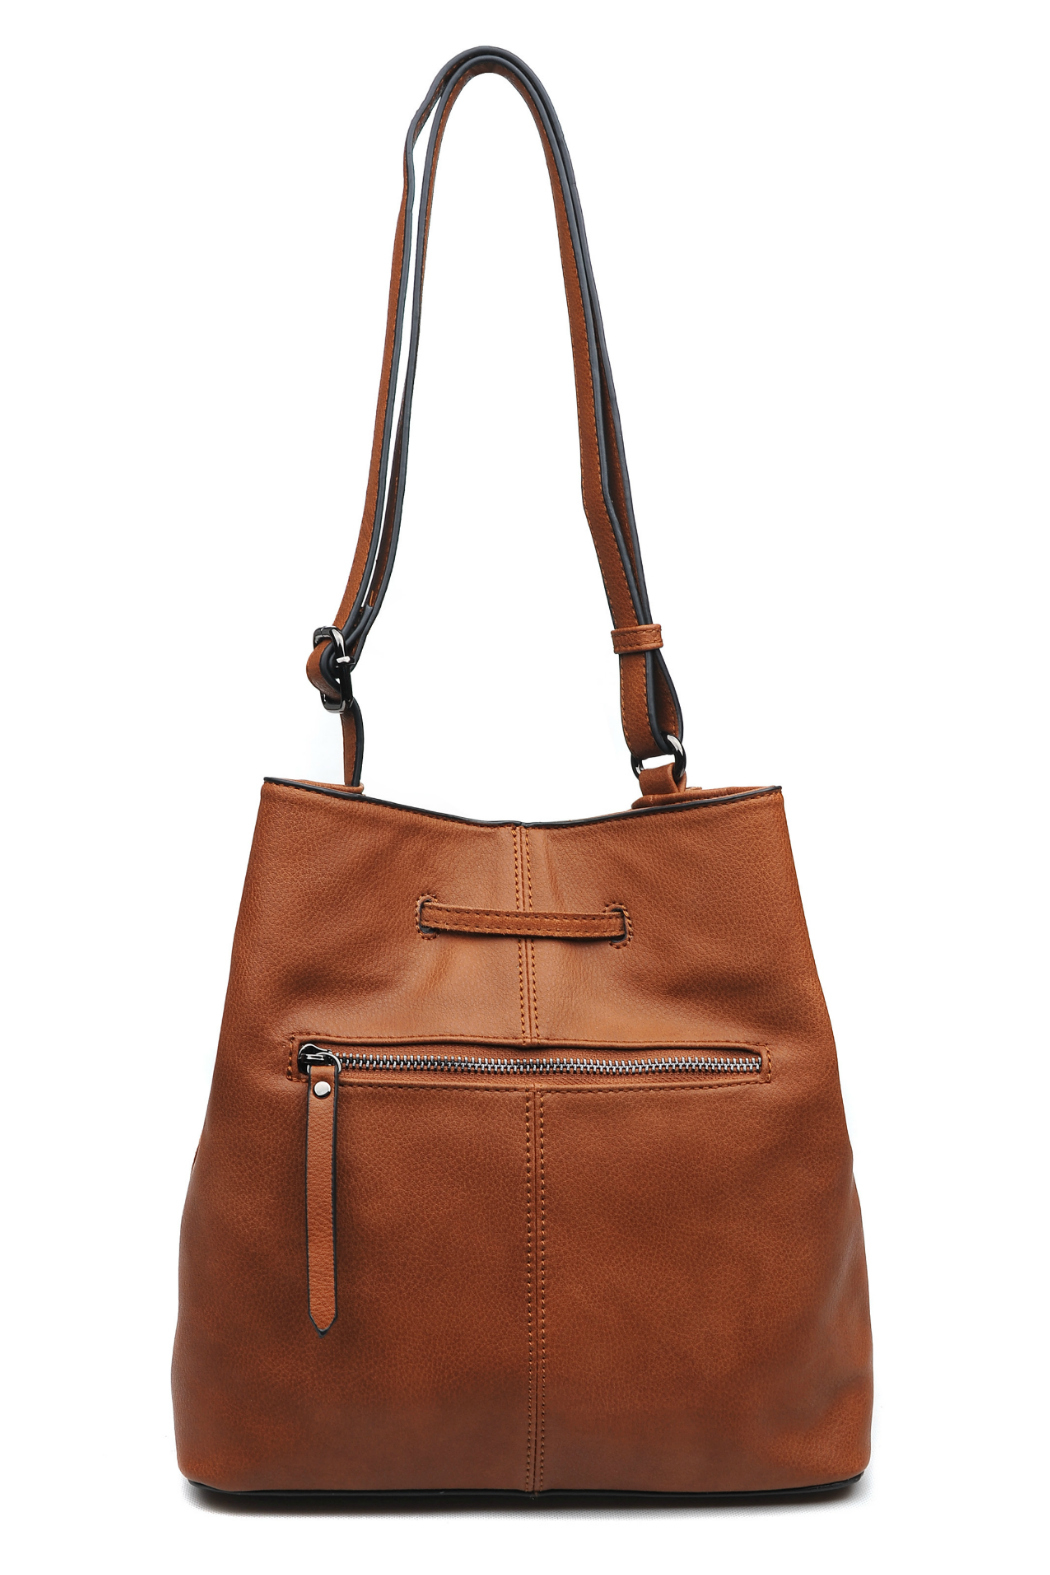 Moda Luxe April Bag with tassel - Front Full Image